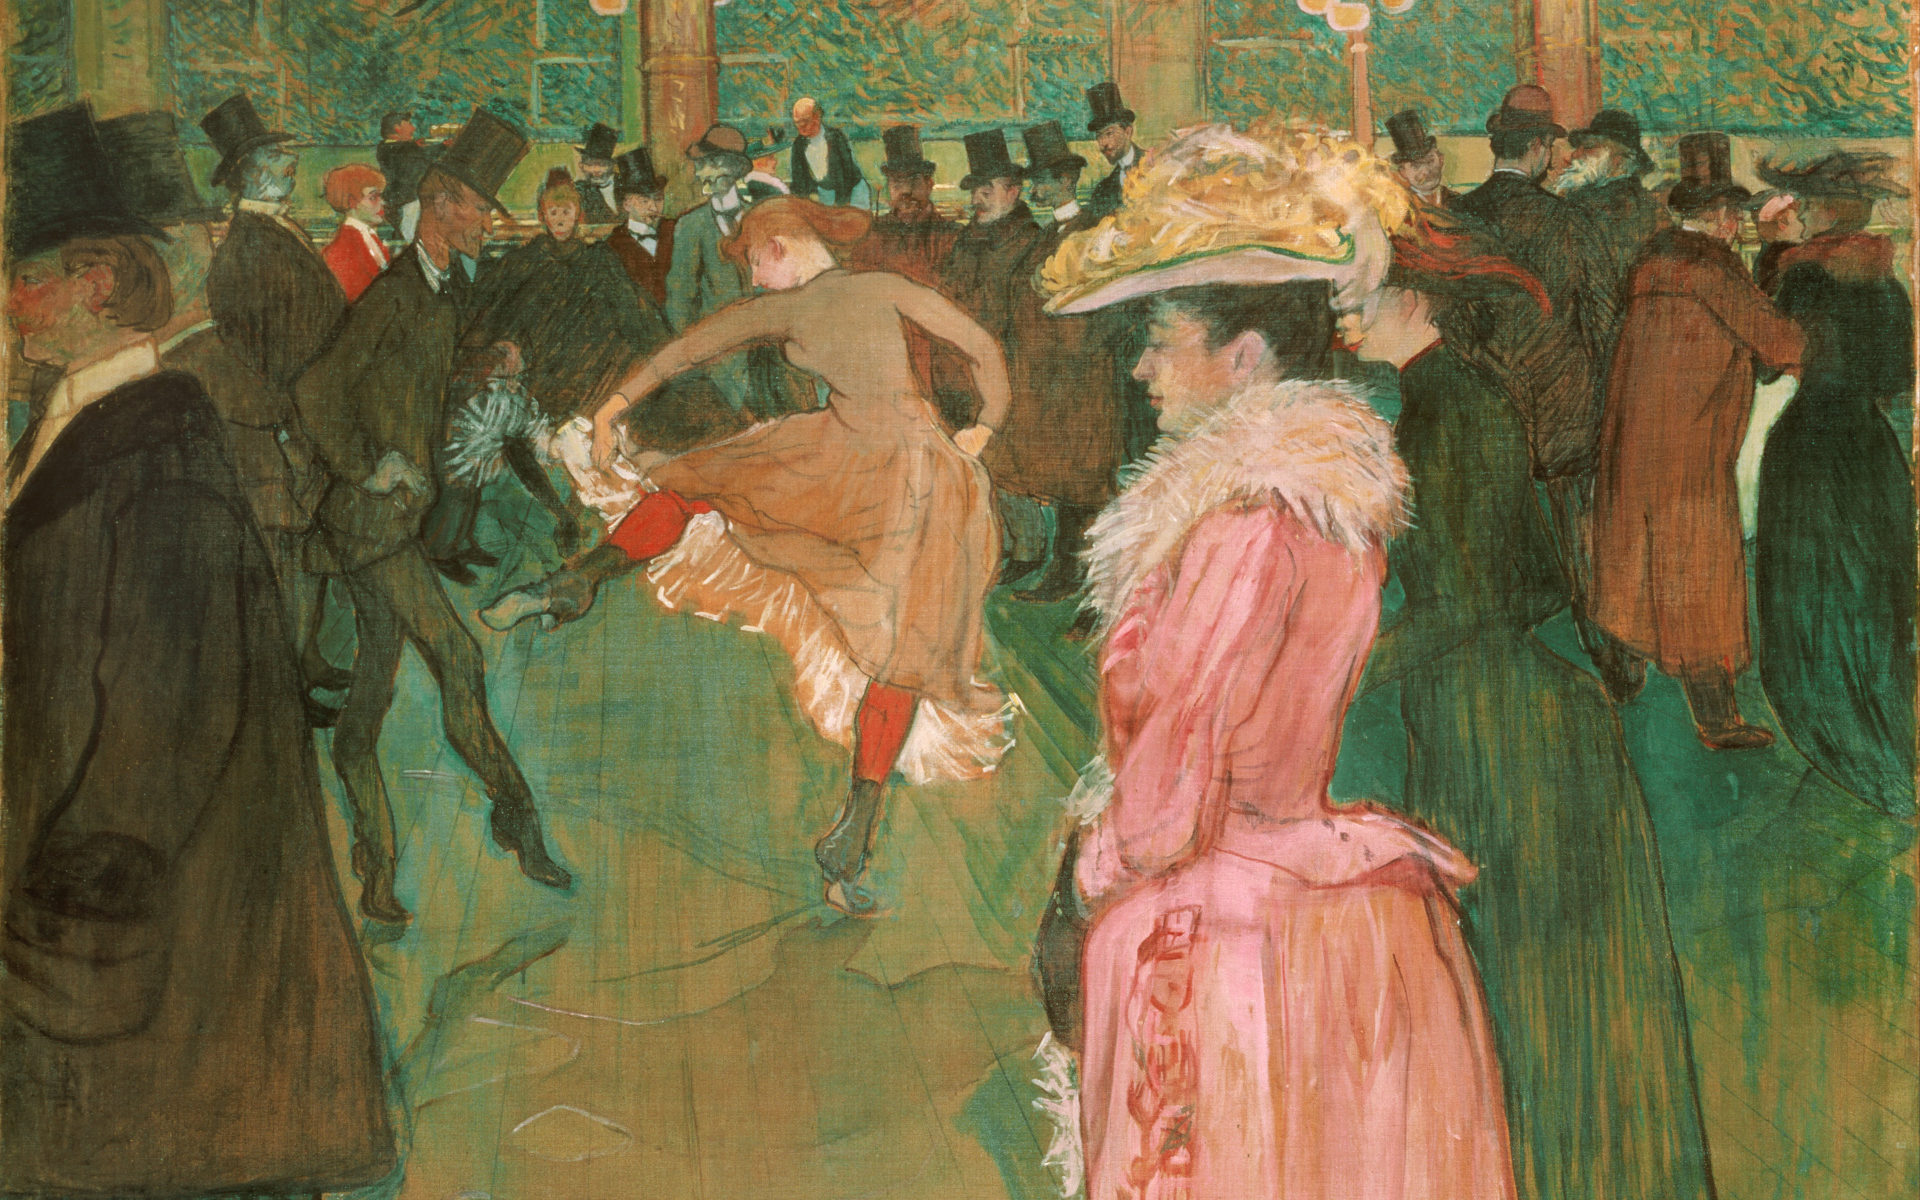 At the Moulin Rouge: The Dance, a painting by Toulouse-Lautrec